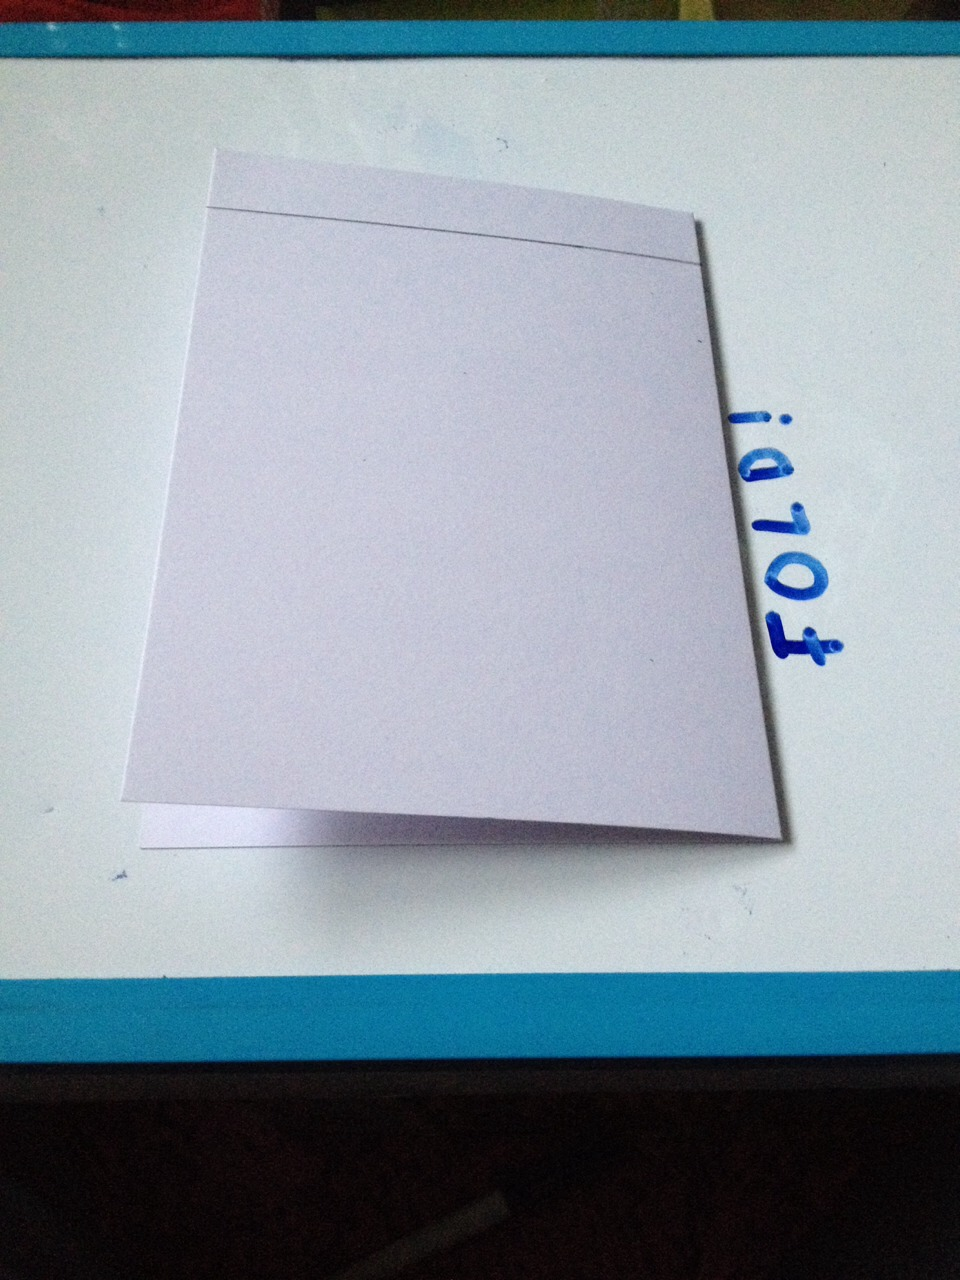 Make a line 2 cm from the top of the card